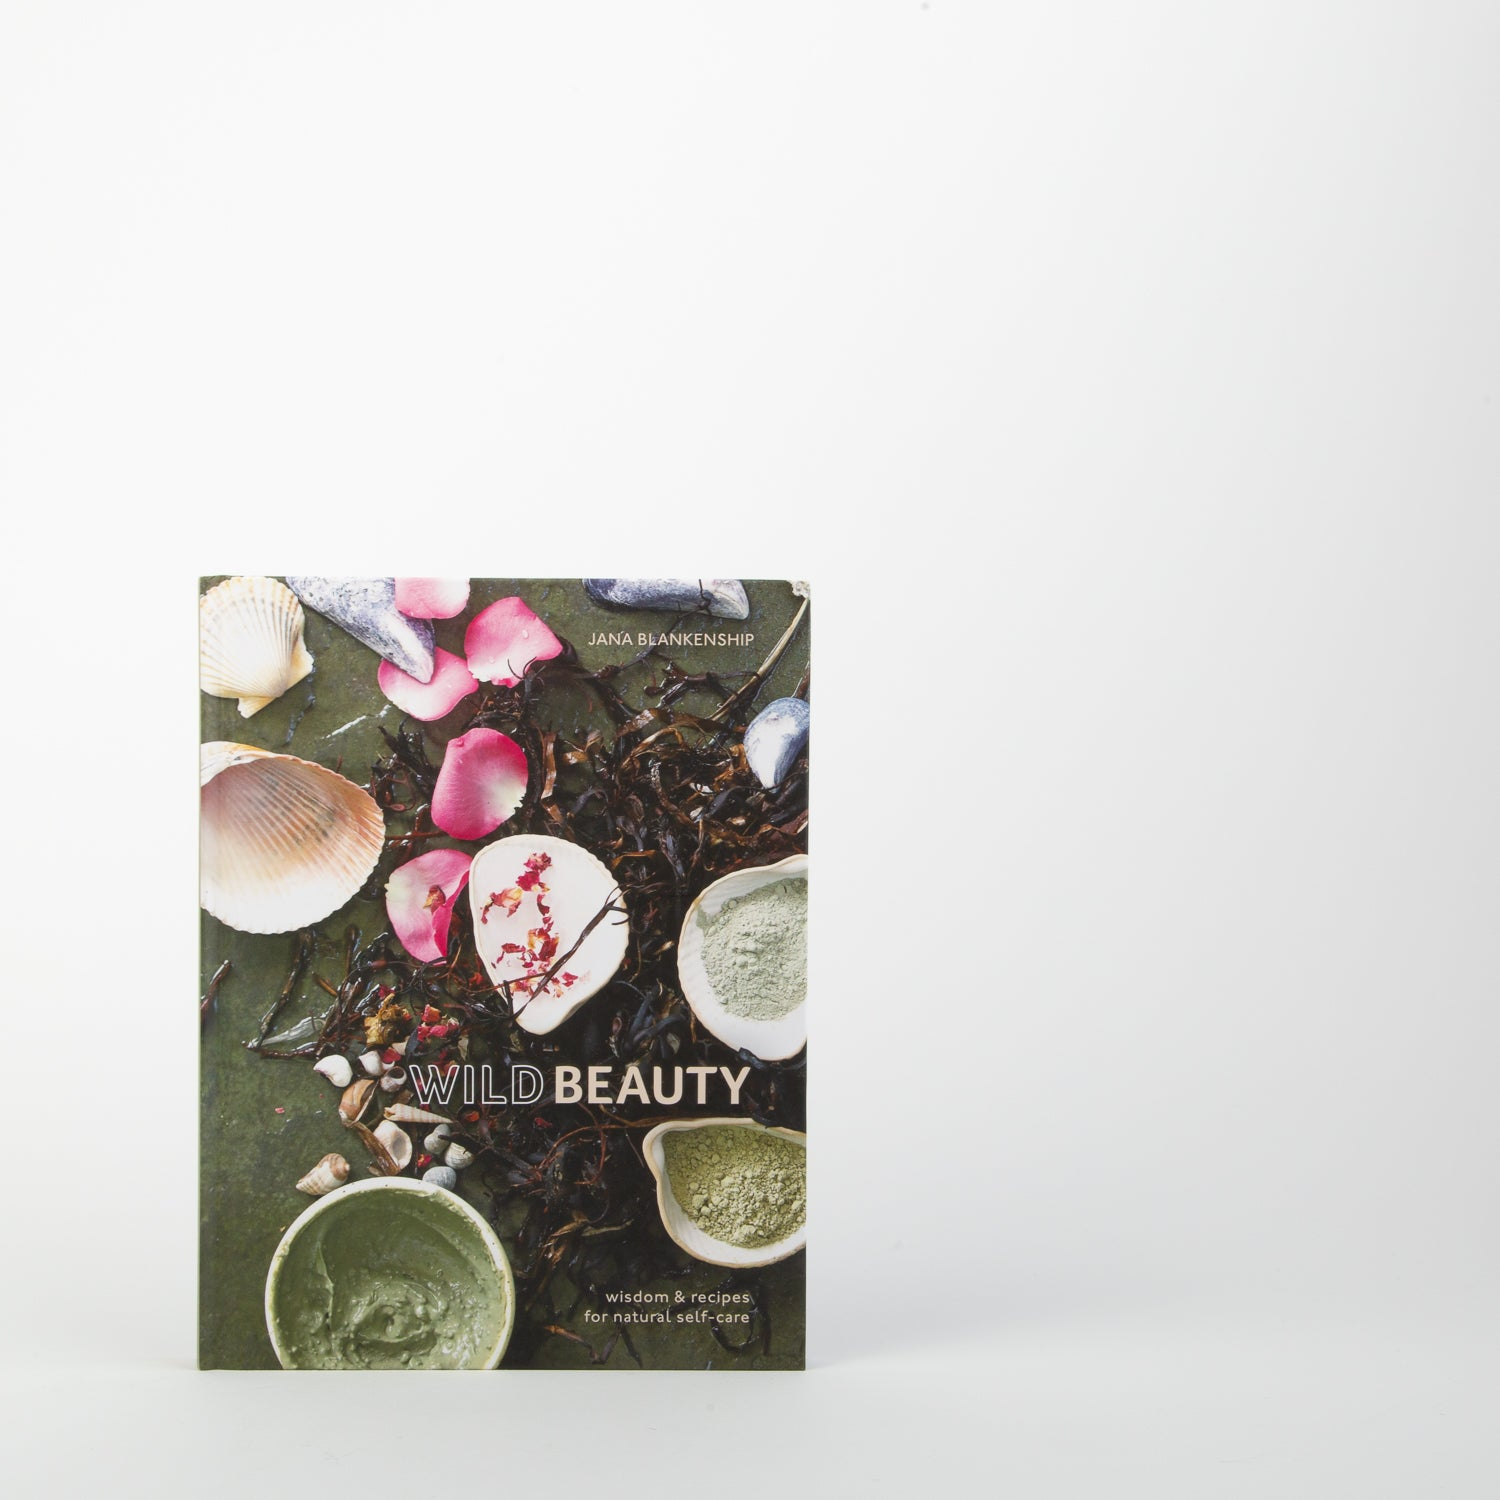 Wild Beauty: Wisdom & Recipe for Natural Self-Care by Penguin Books at Secret Location